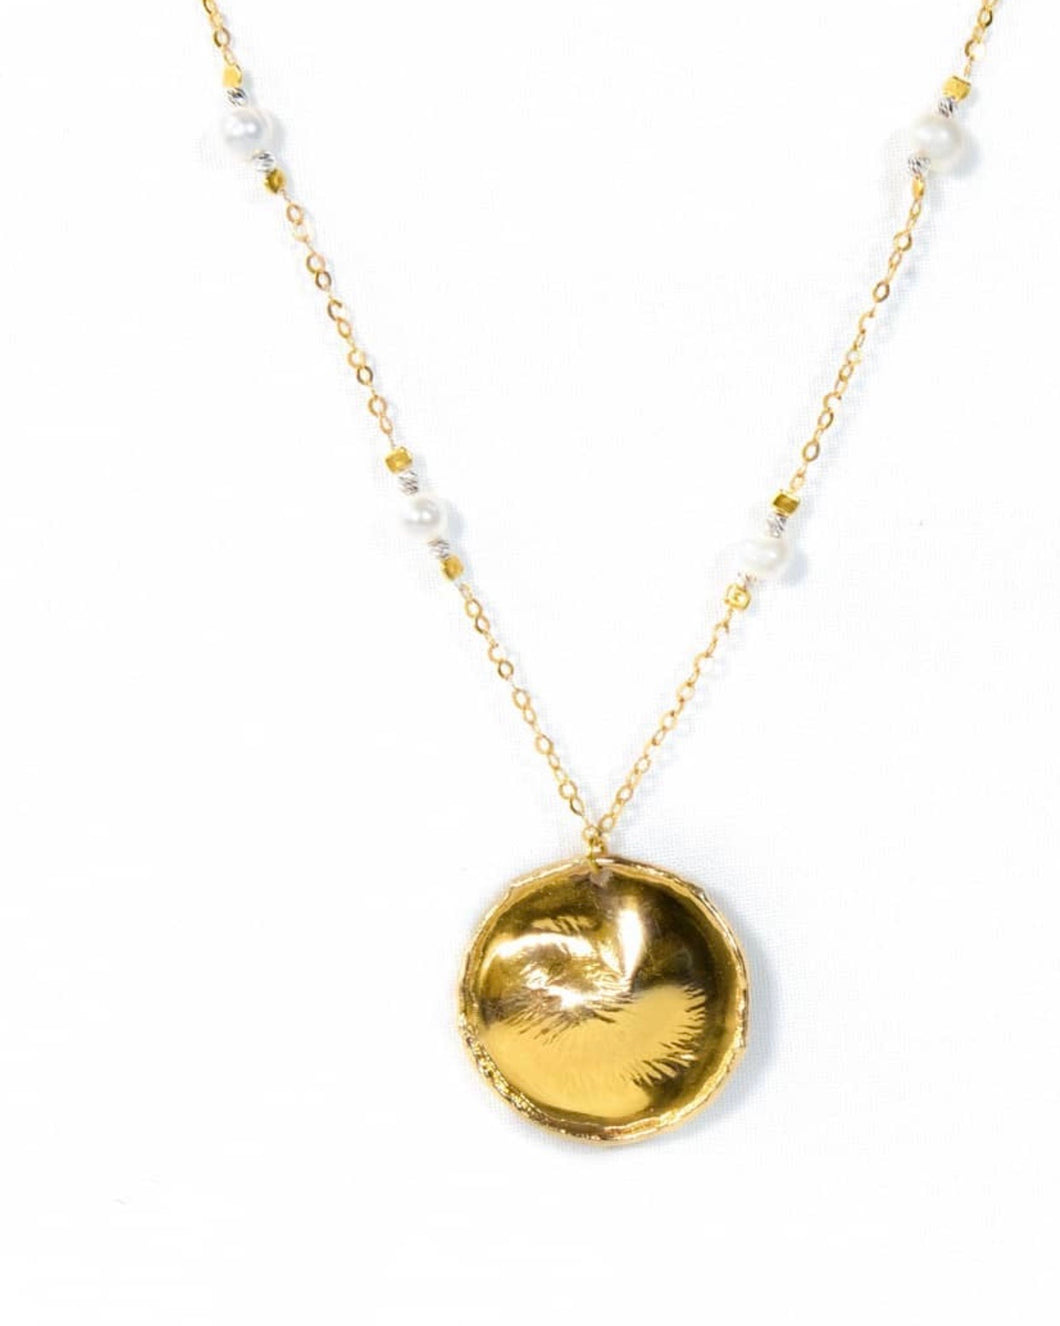 Nephele coin necklace